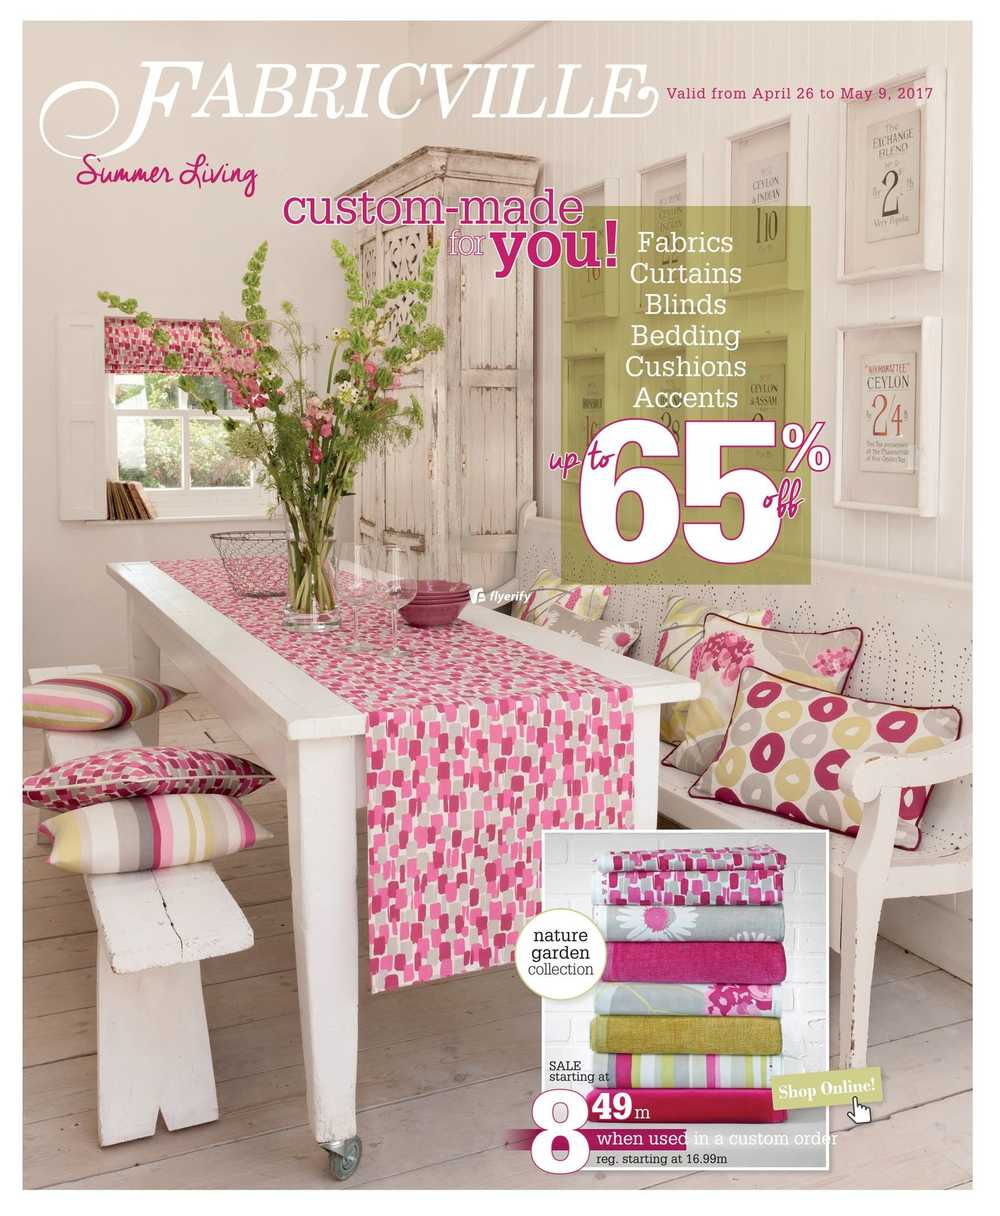 Fabricville home decor flyer april 26 to may 9 canada for Home decor canada